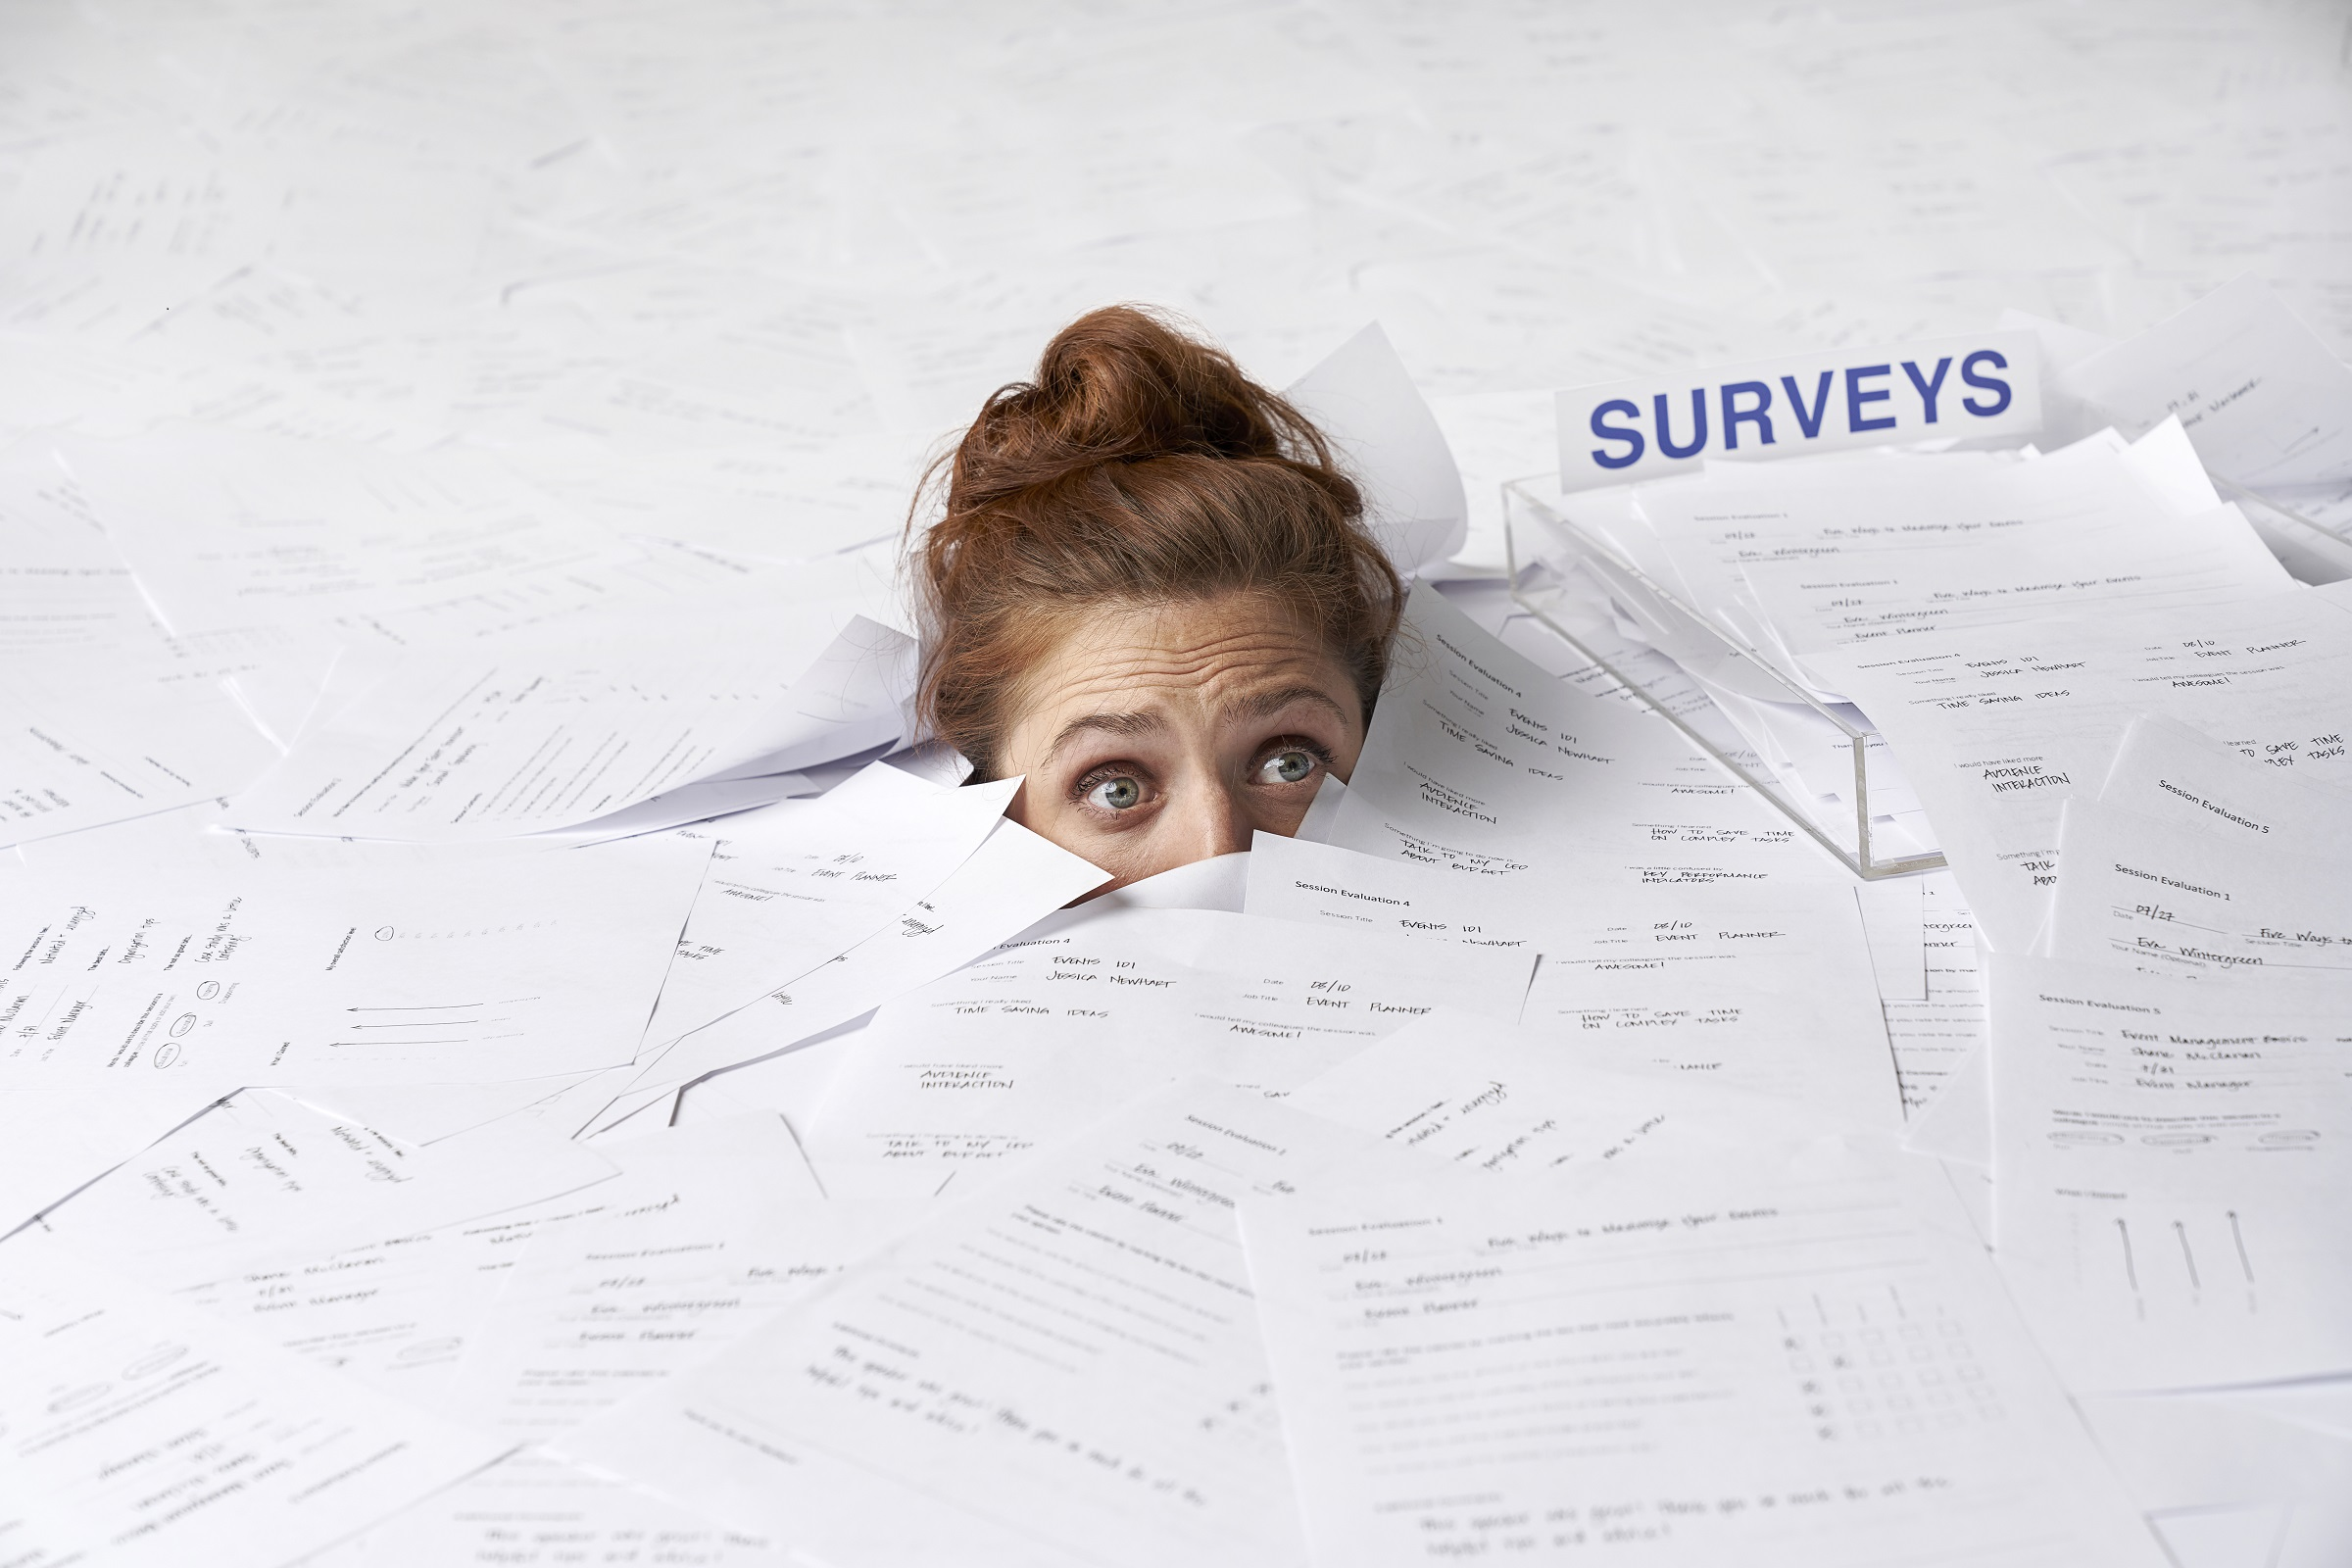 The Invisible Workload of event surveys